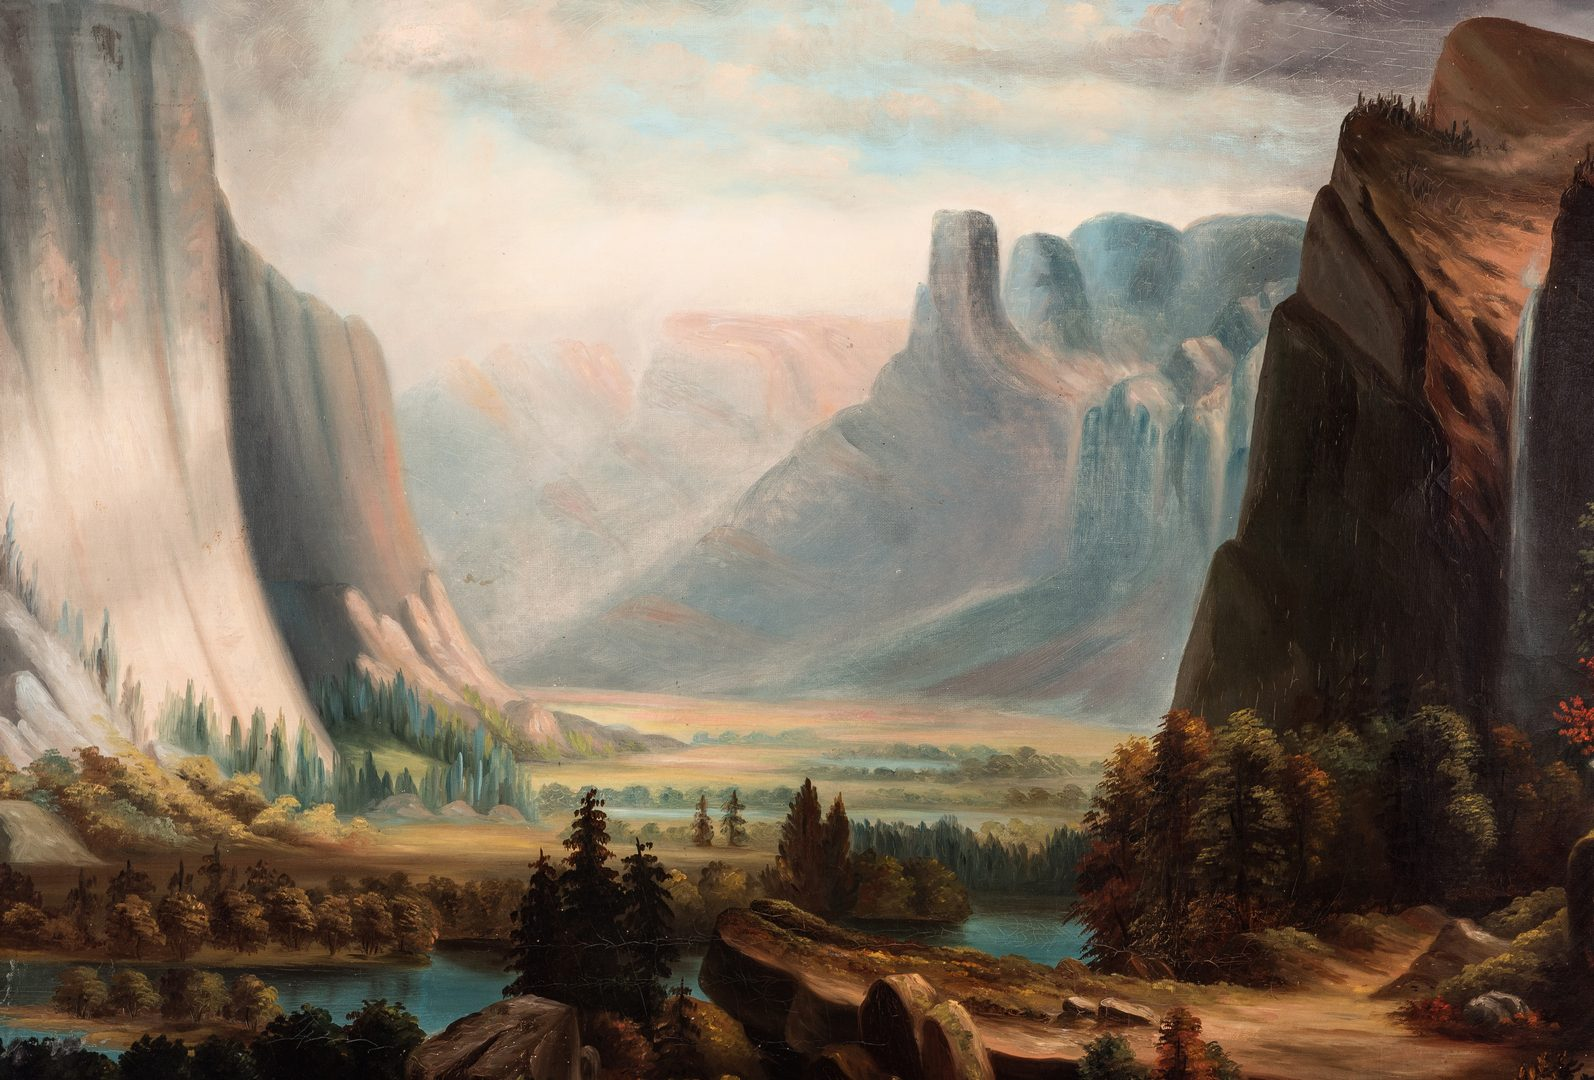 Lot 553: Attr. William Harring, O/C, Yosemite Valley